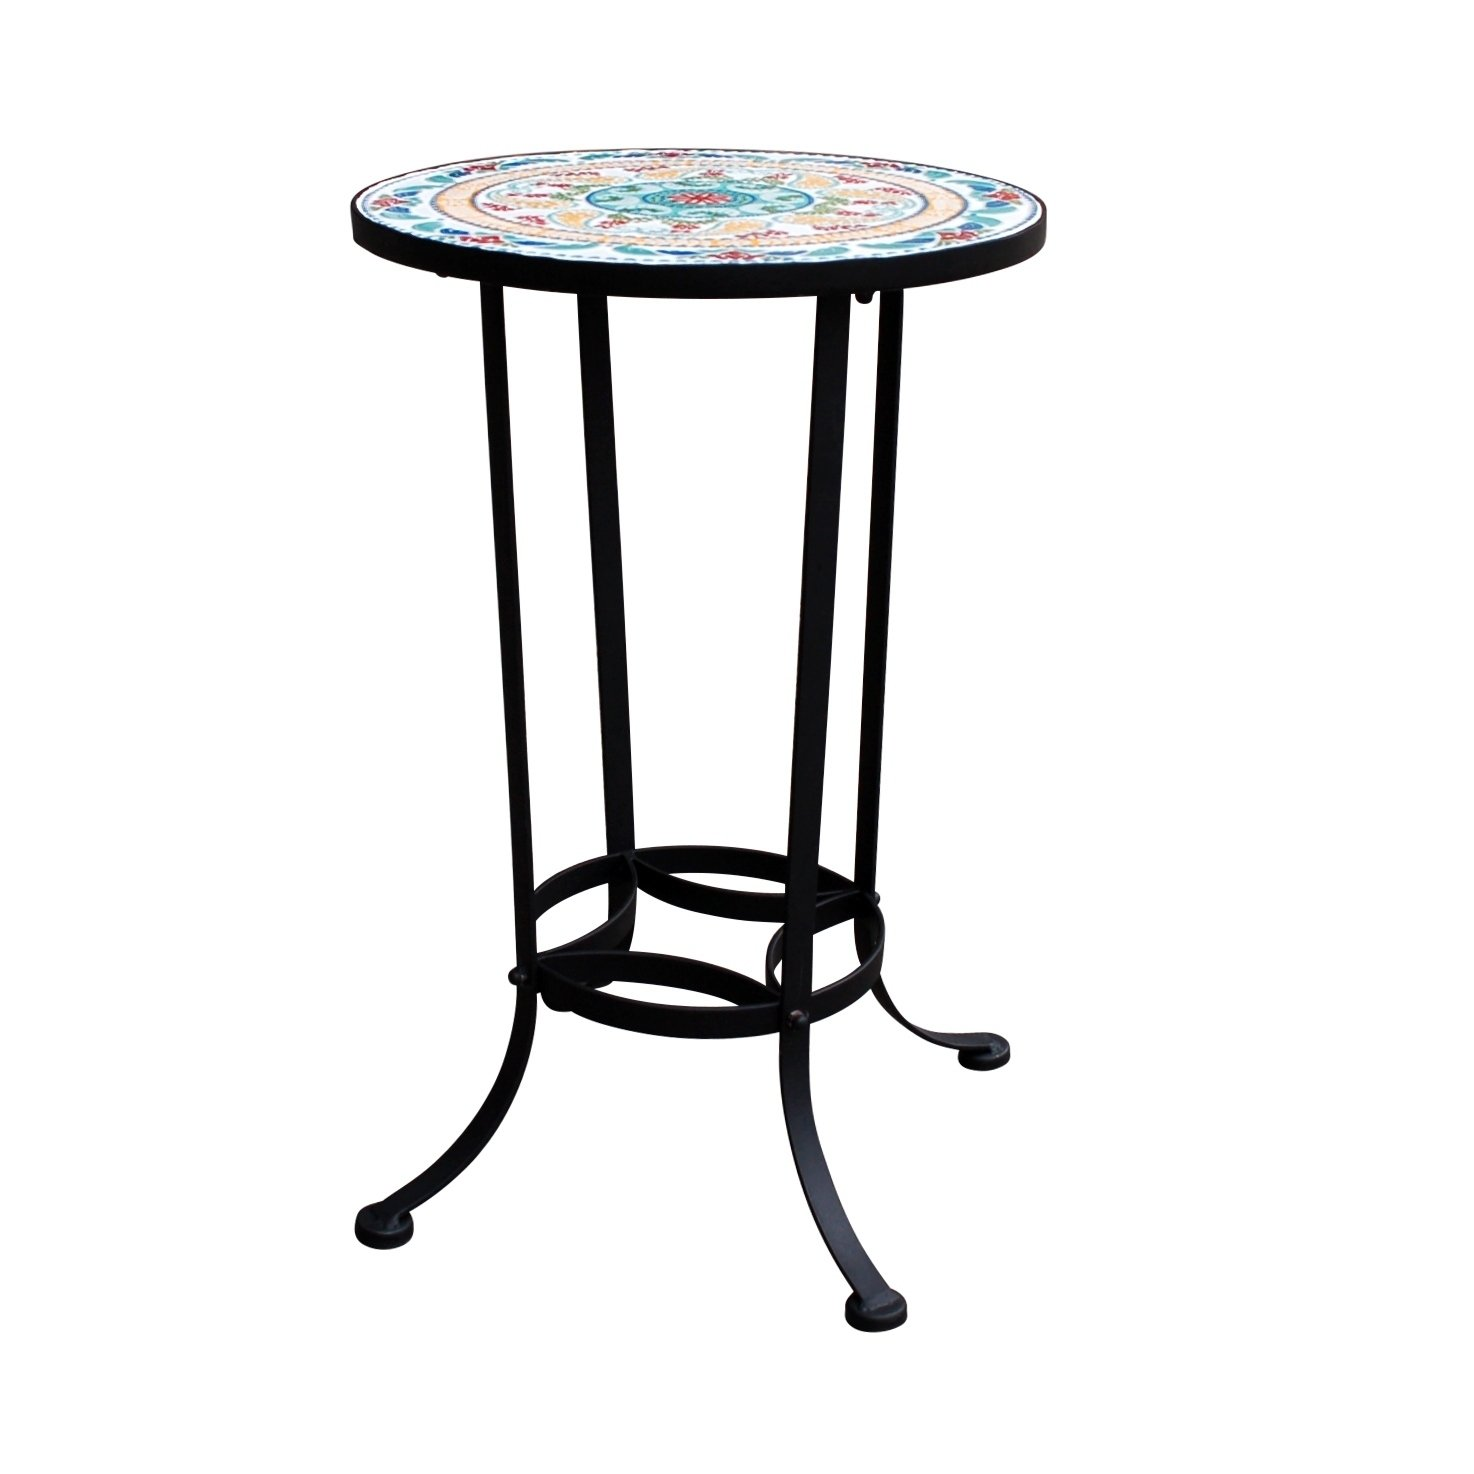 mosaic side table free shipping today outdoor small kitchen and chairs set kirklands bar stools thomasville end tables target recliners accent for bedroom meyda tiffany lamp bases